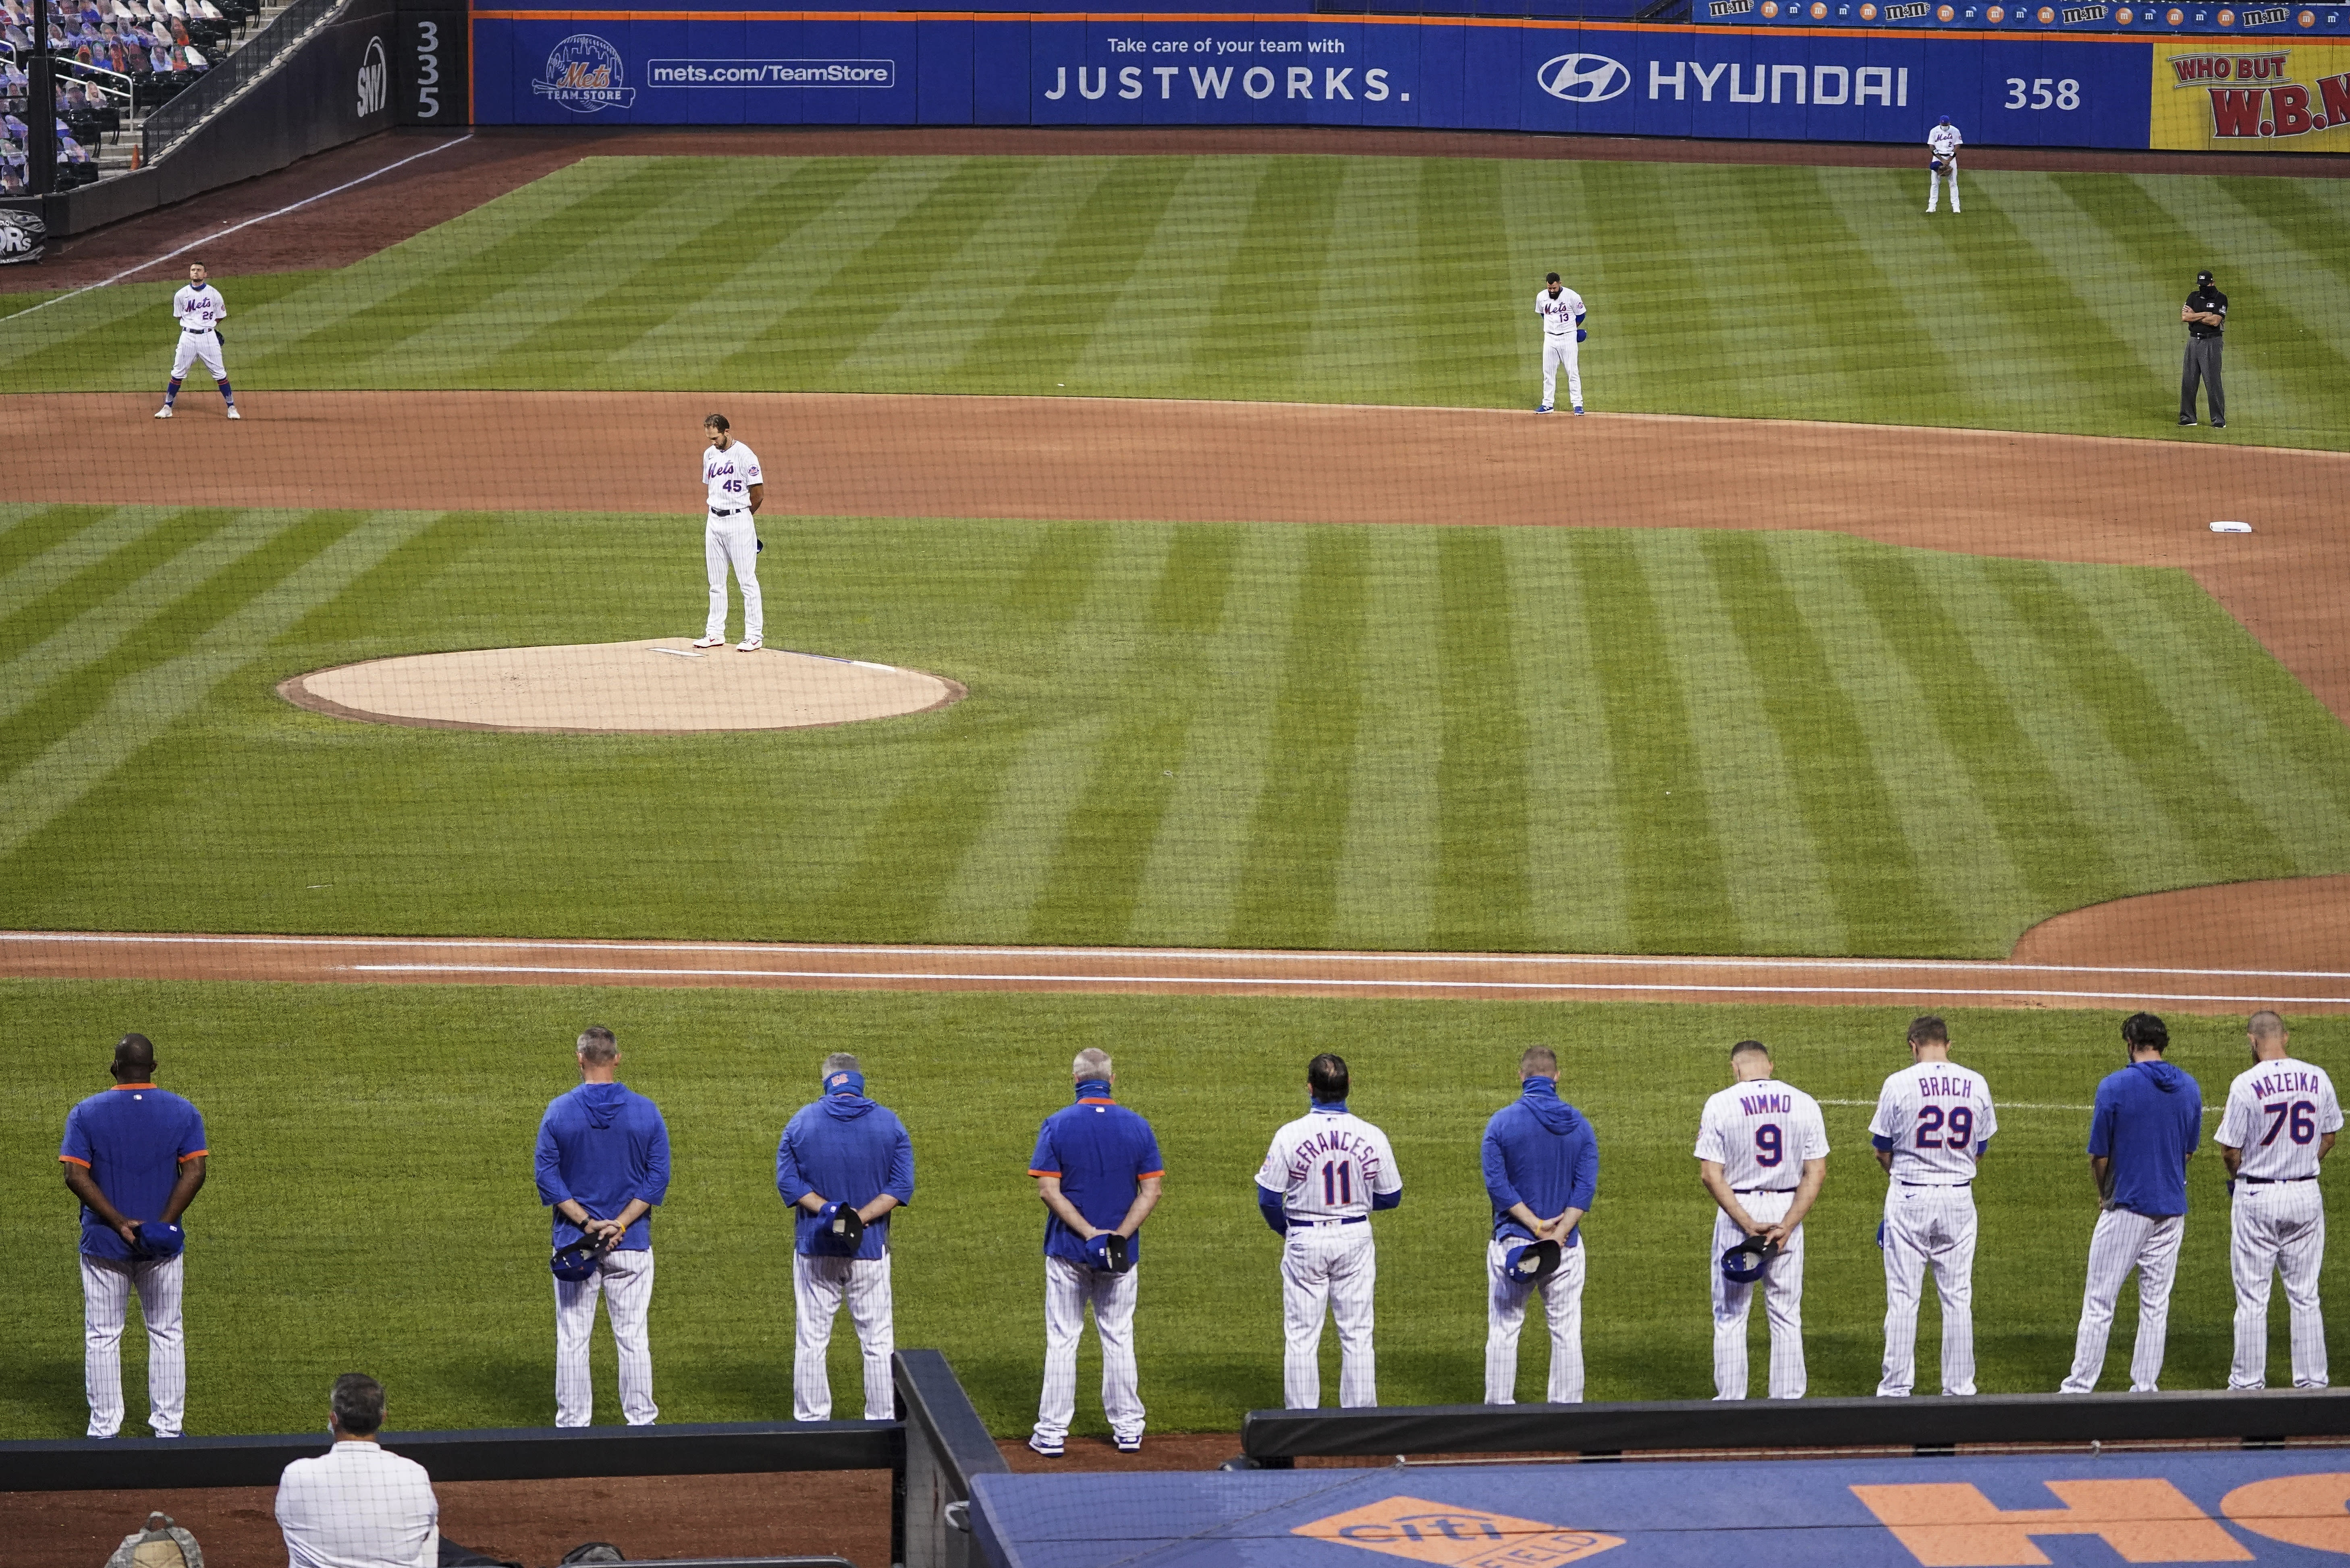 The New York Mets and Miami Marlins stand on the field and bow their heads before a scheduled baseball game Thursday, Aug. 27, 2020, in New York. Mets outfielder Dominic Smith — a Black man who wept Wednesday night discussing the shooting by police of a Black man in Wisconsin over the weekend — led New York onto the field. Players took their positions, then reserves and coaches filed out of both dugouts and stood silently for 42 seconds. Both teams then left the field, leaving only the black T-shirt at home. (AP Photo/John Minchillo)